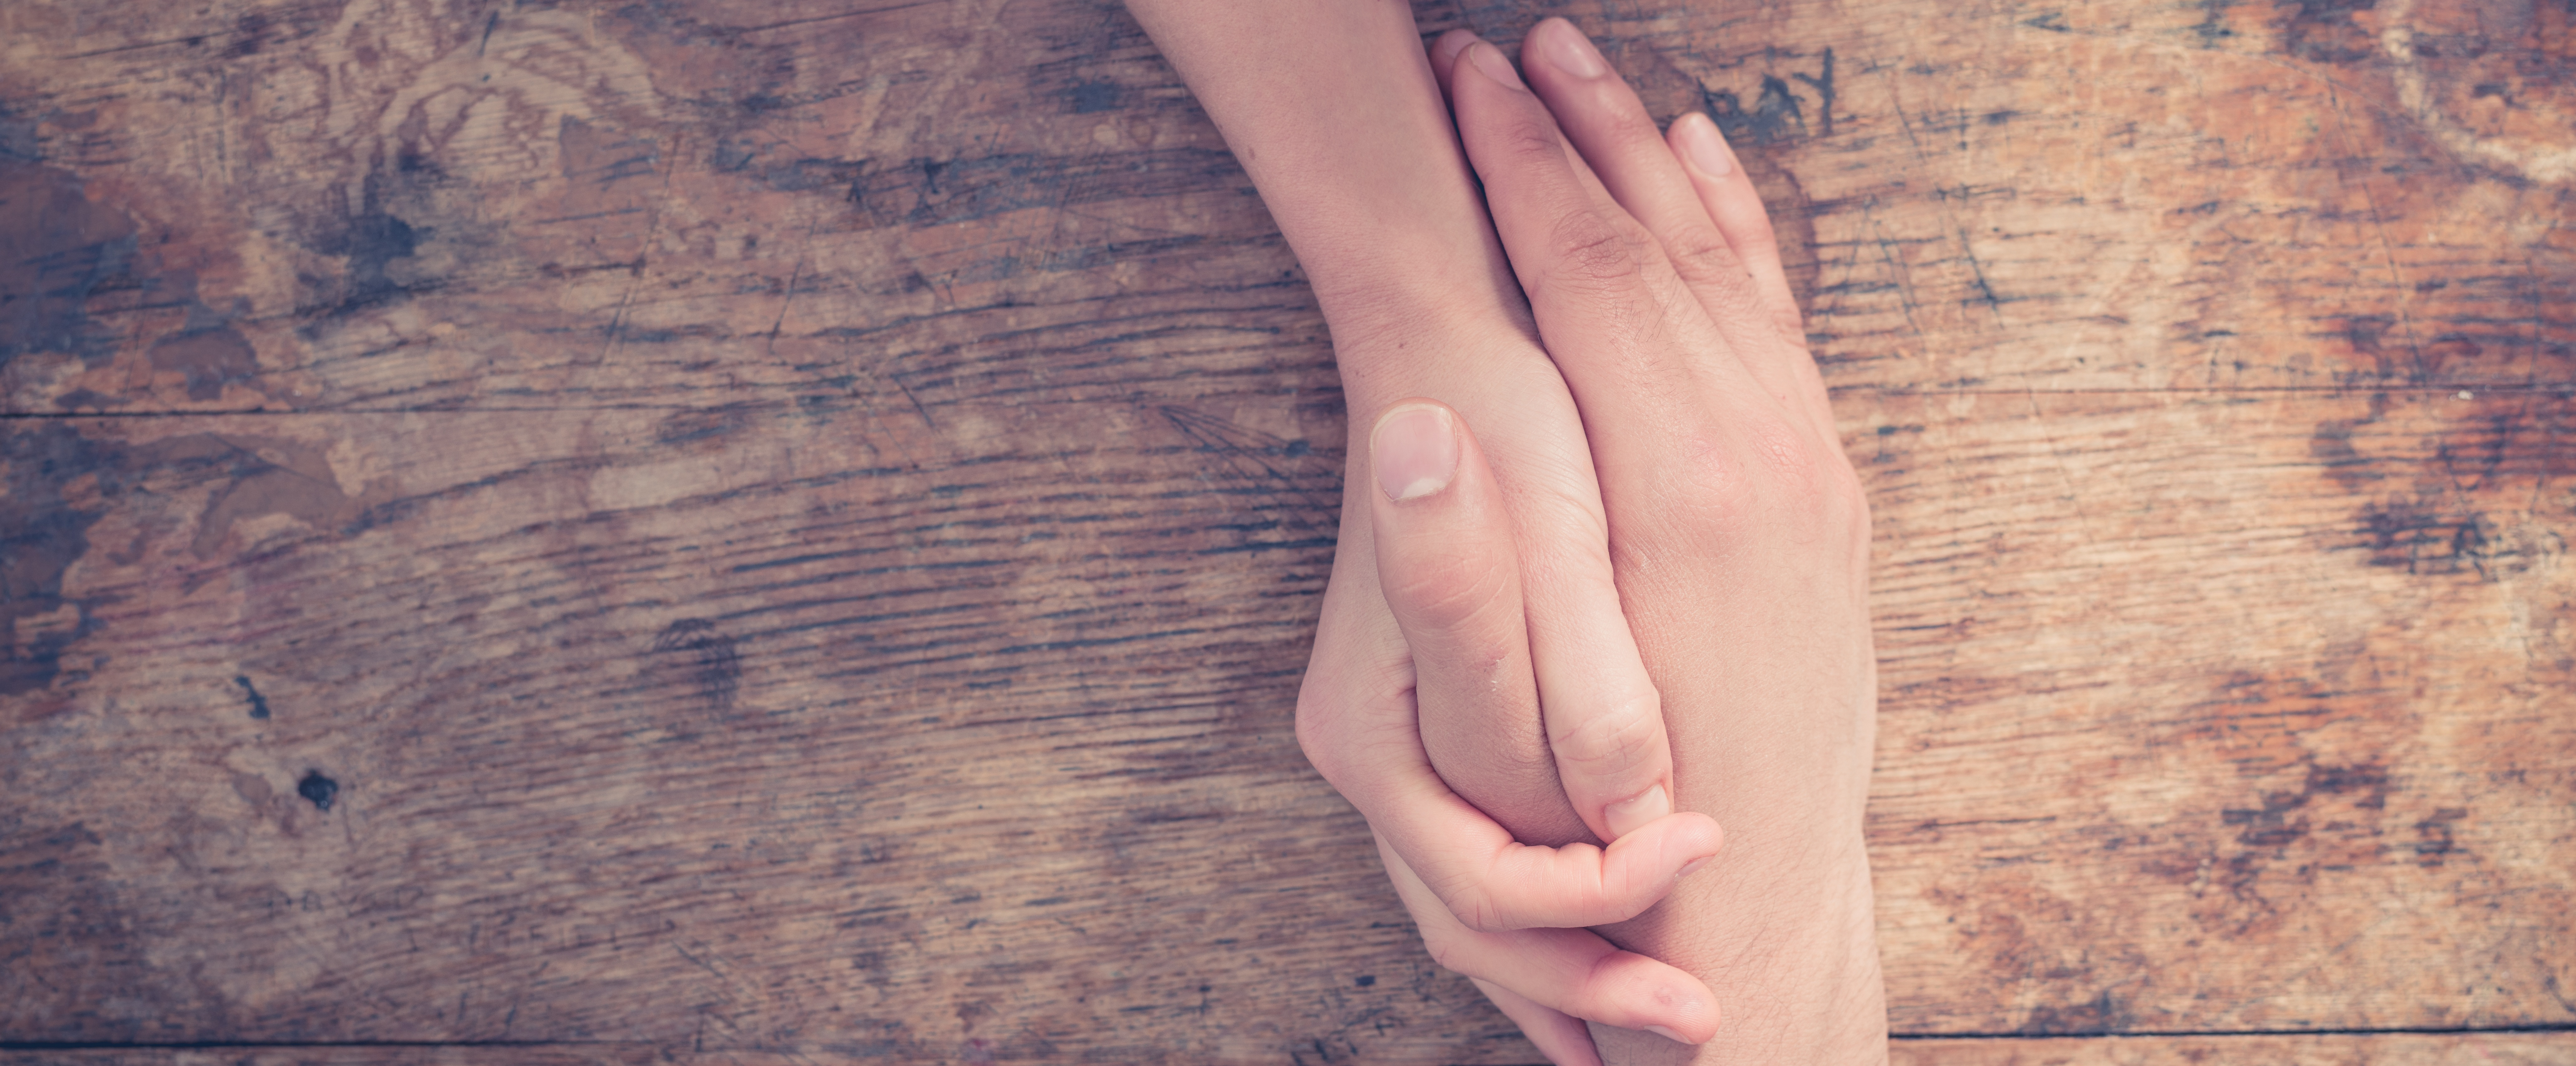 5 Sales Phrases That Show Empathy to a Struggling Prospect